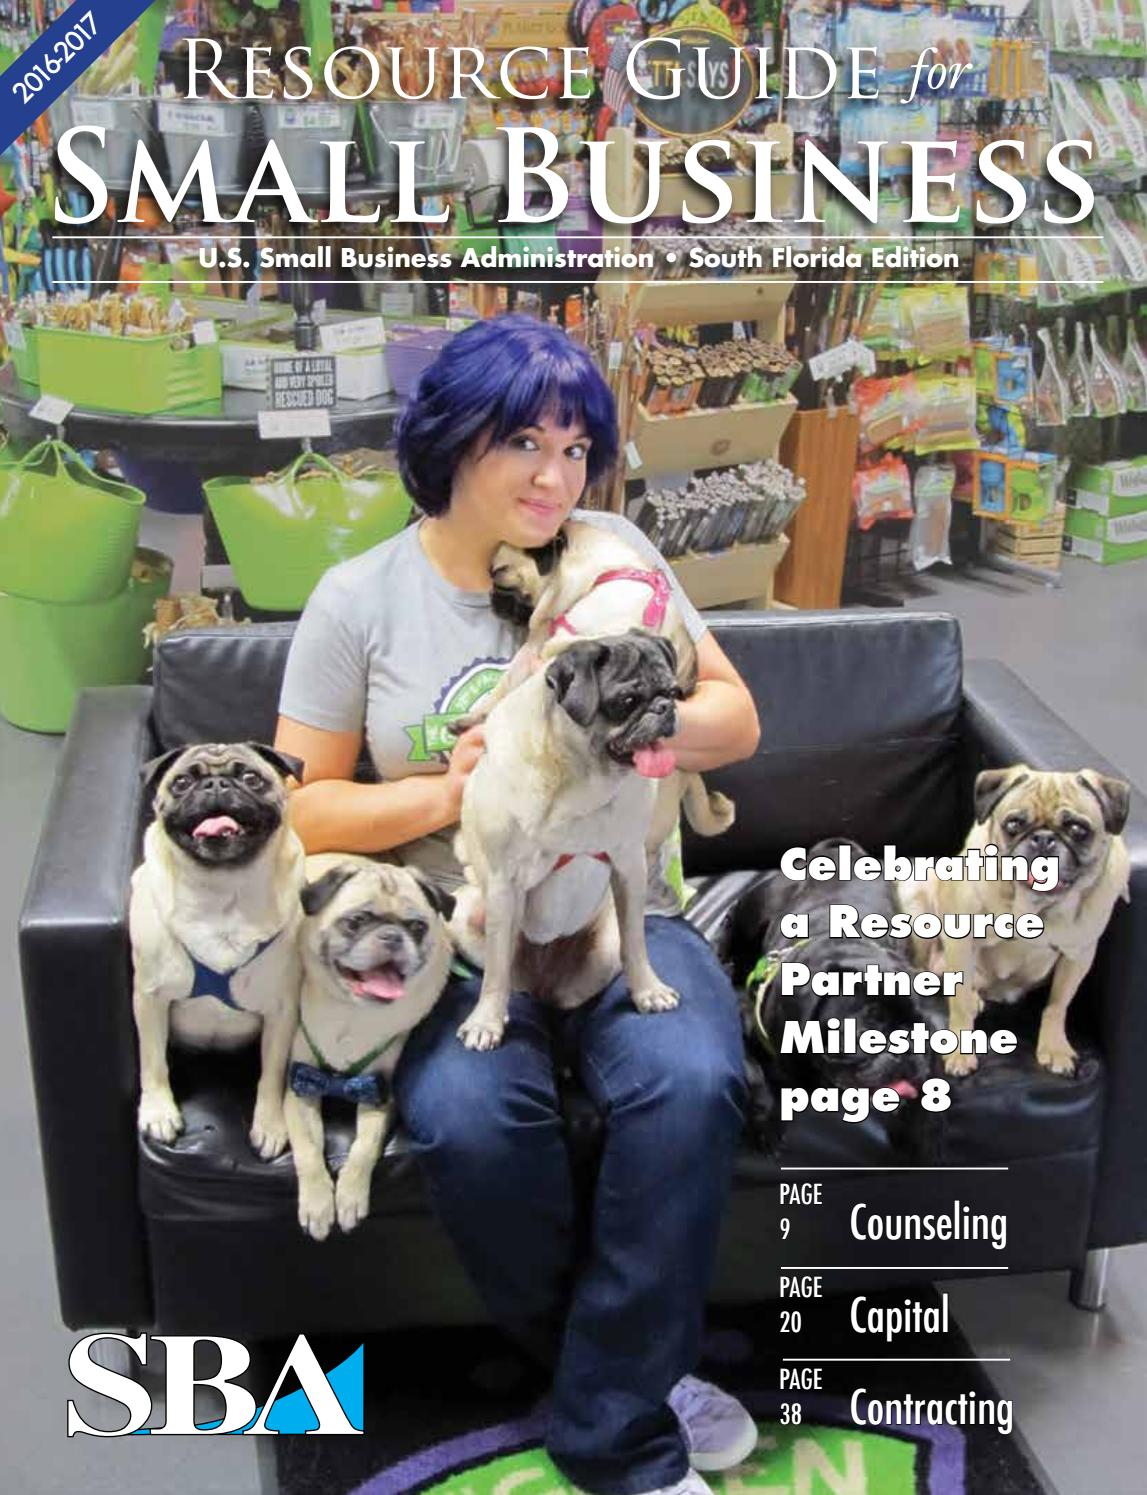 SBA Resource Guide for Small Business - South Florida 2016